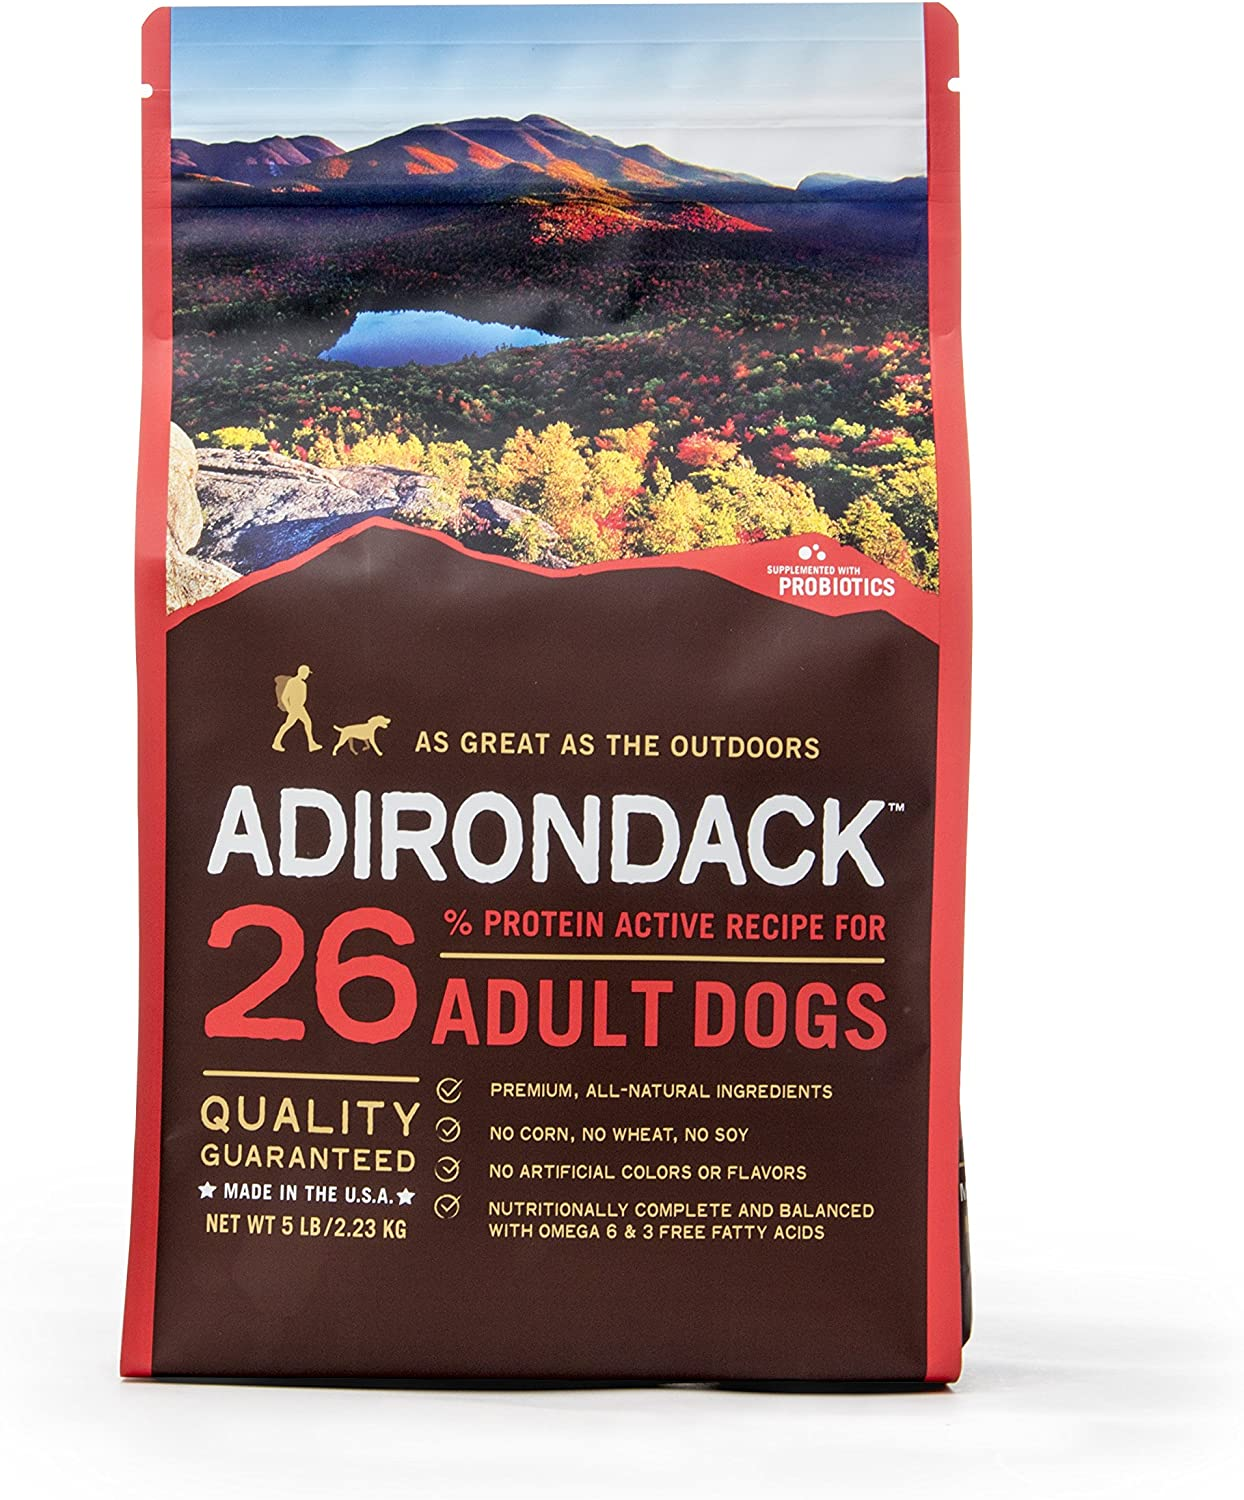 Adirondack Pet Food 22458 26% Protein Everyday Dog Food Recipe For Adult Dogs, 15Lb.